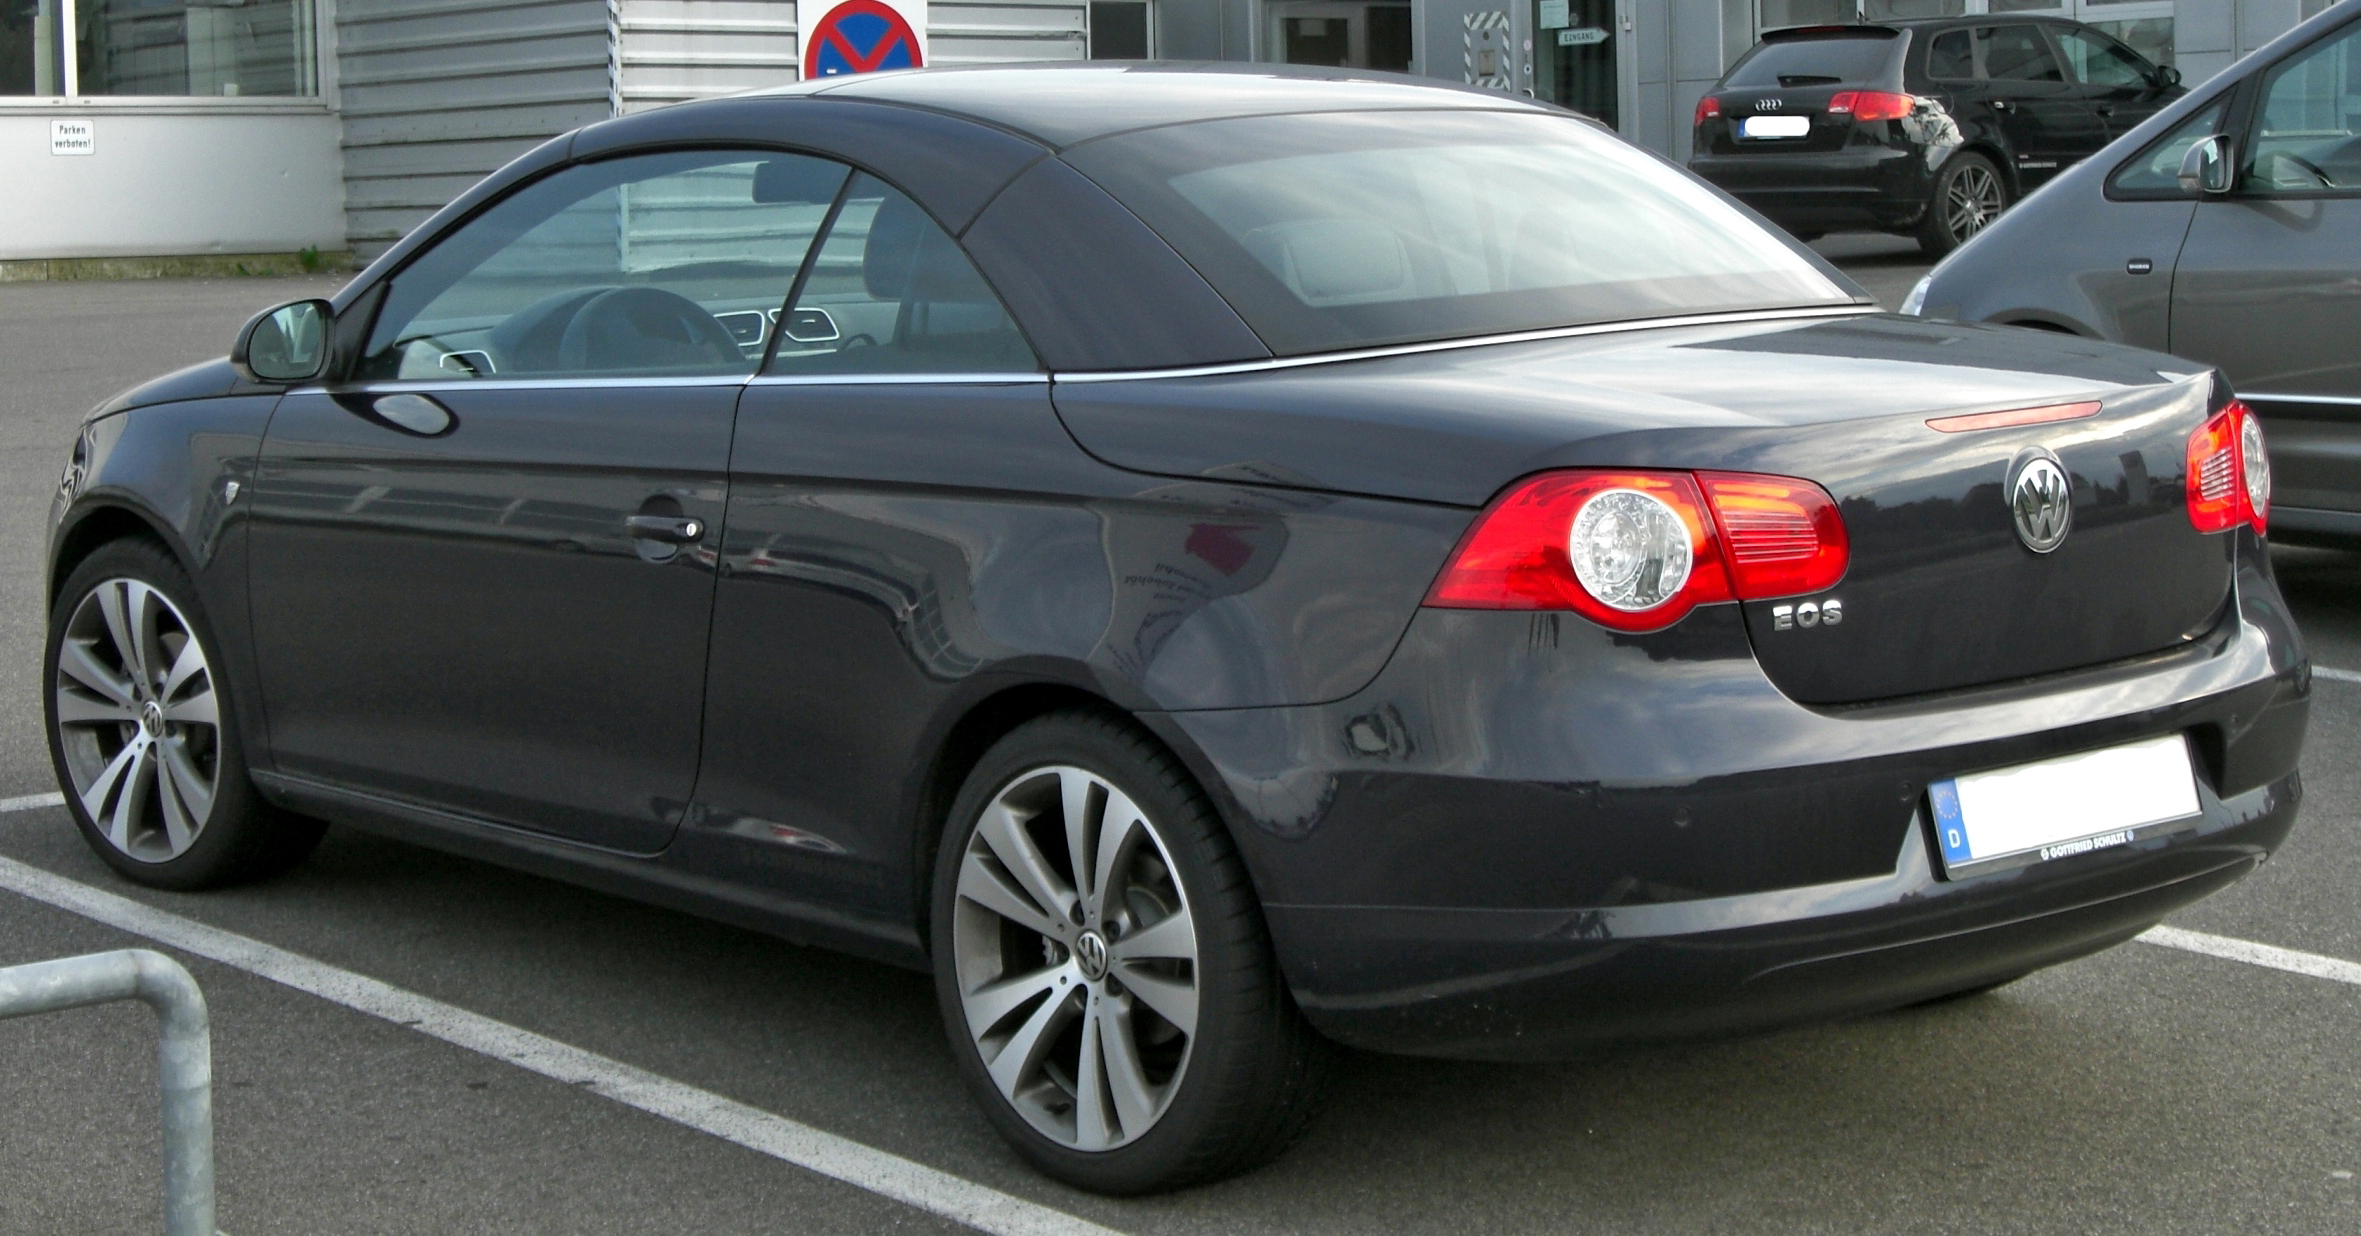 File:VW Eos rear-3.JPG